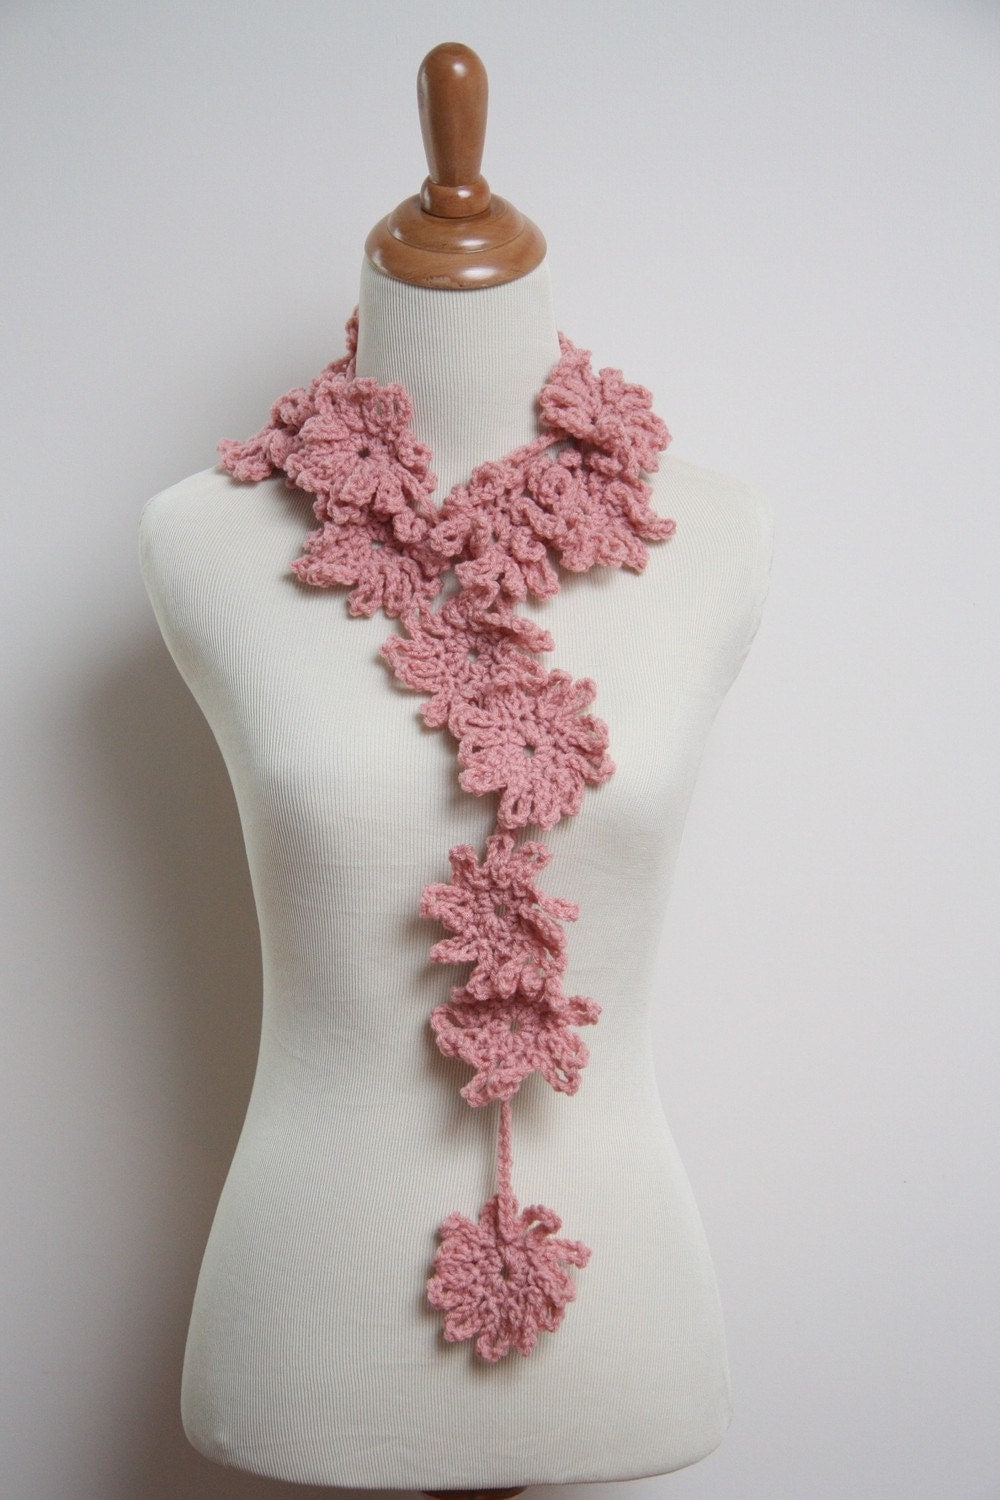 Crochet Flower Scarf in Rose Pink by HandmadeByLarrie on Etsy Crochet Flower Scarves